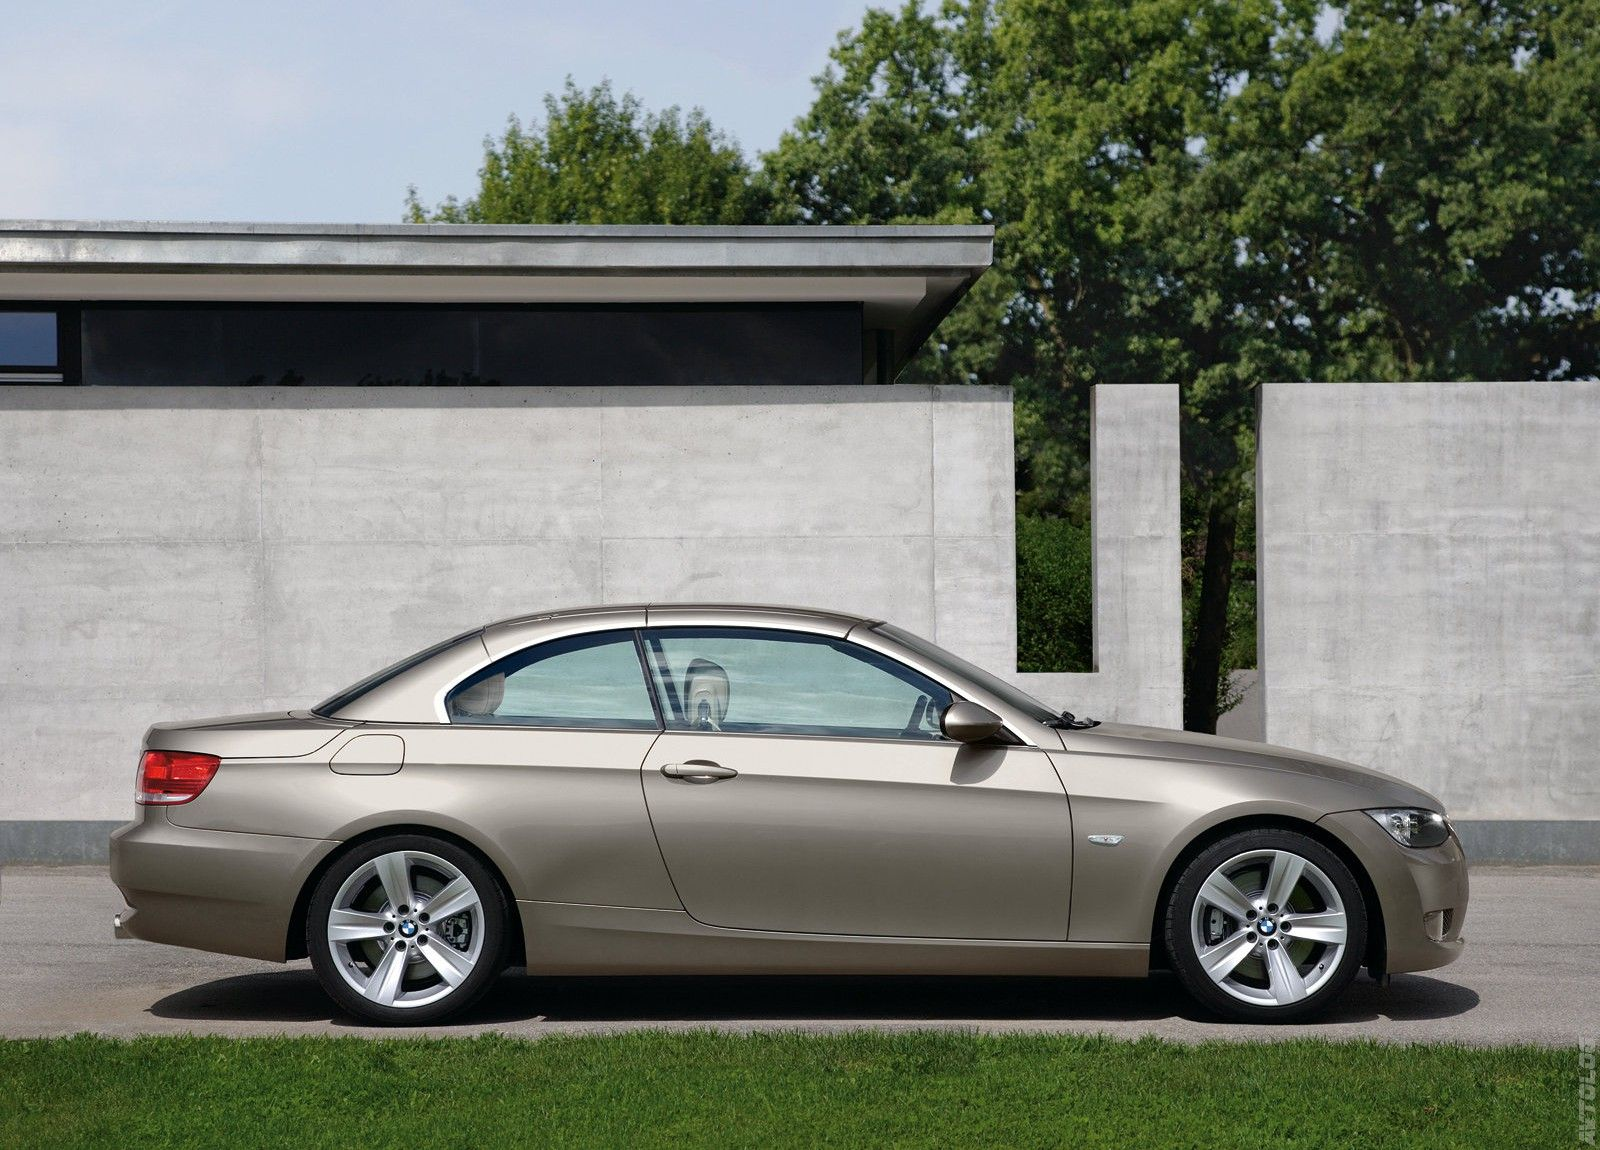 2007 BMW 335i Convertible Brown   BMW Love   Pinterest   BMW and ...